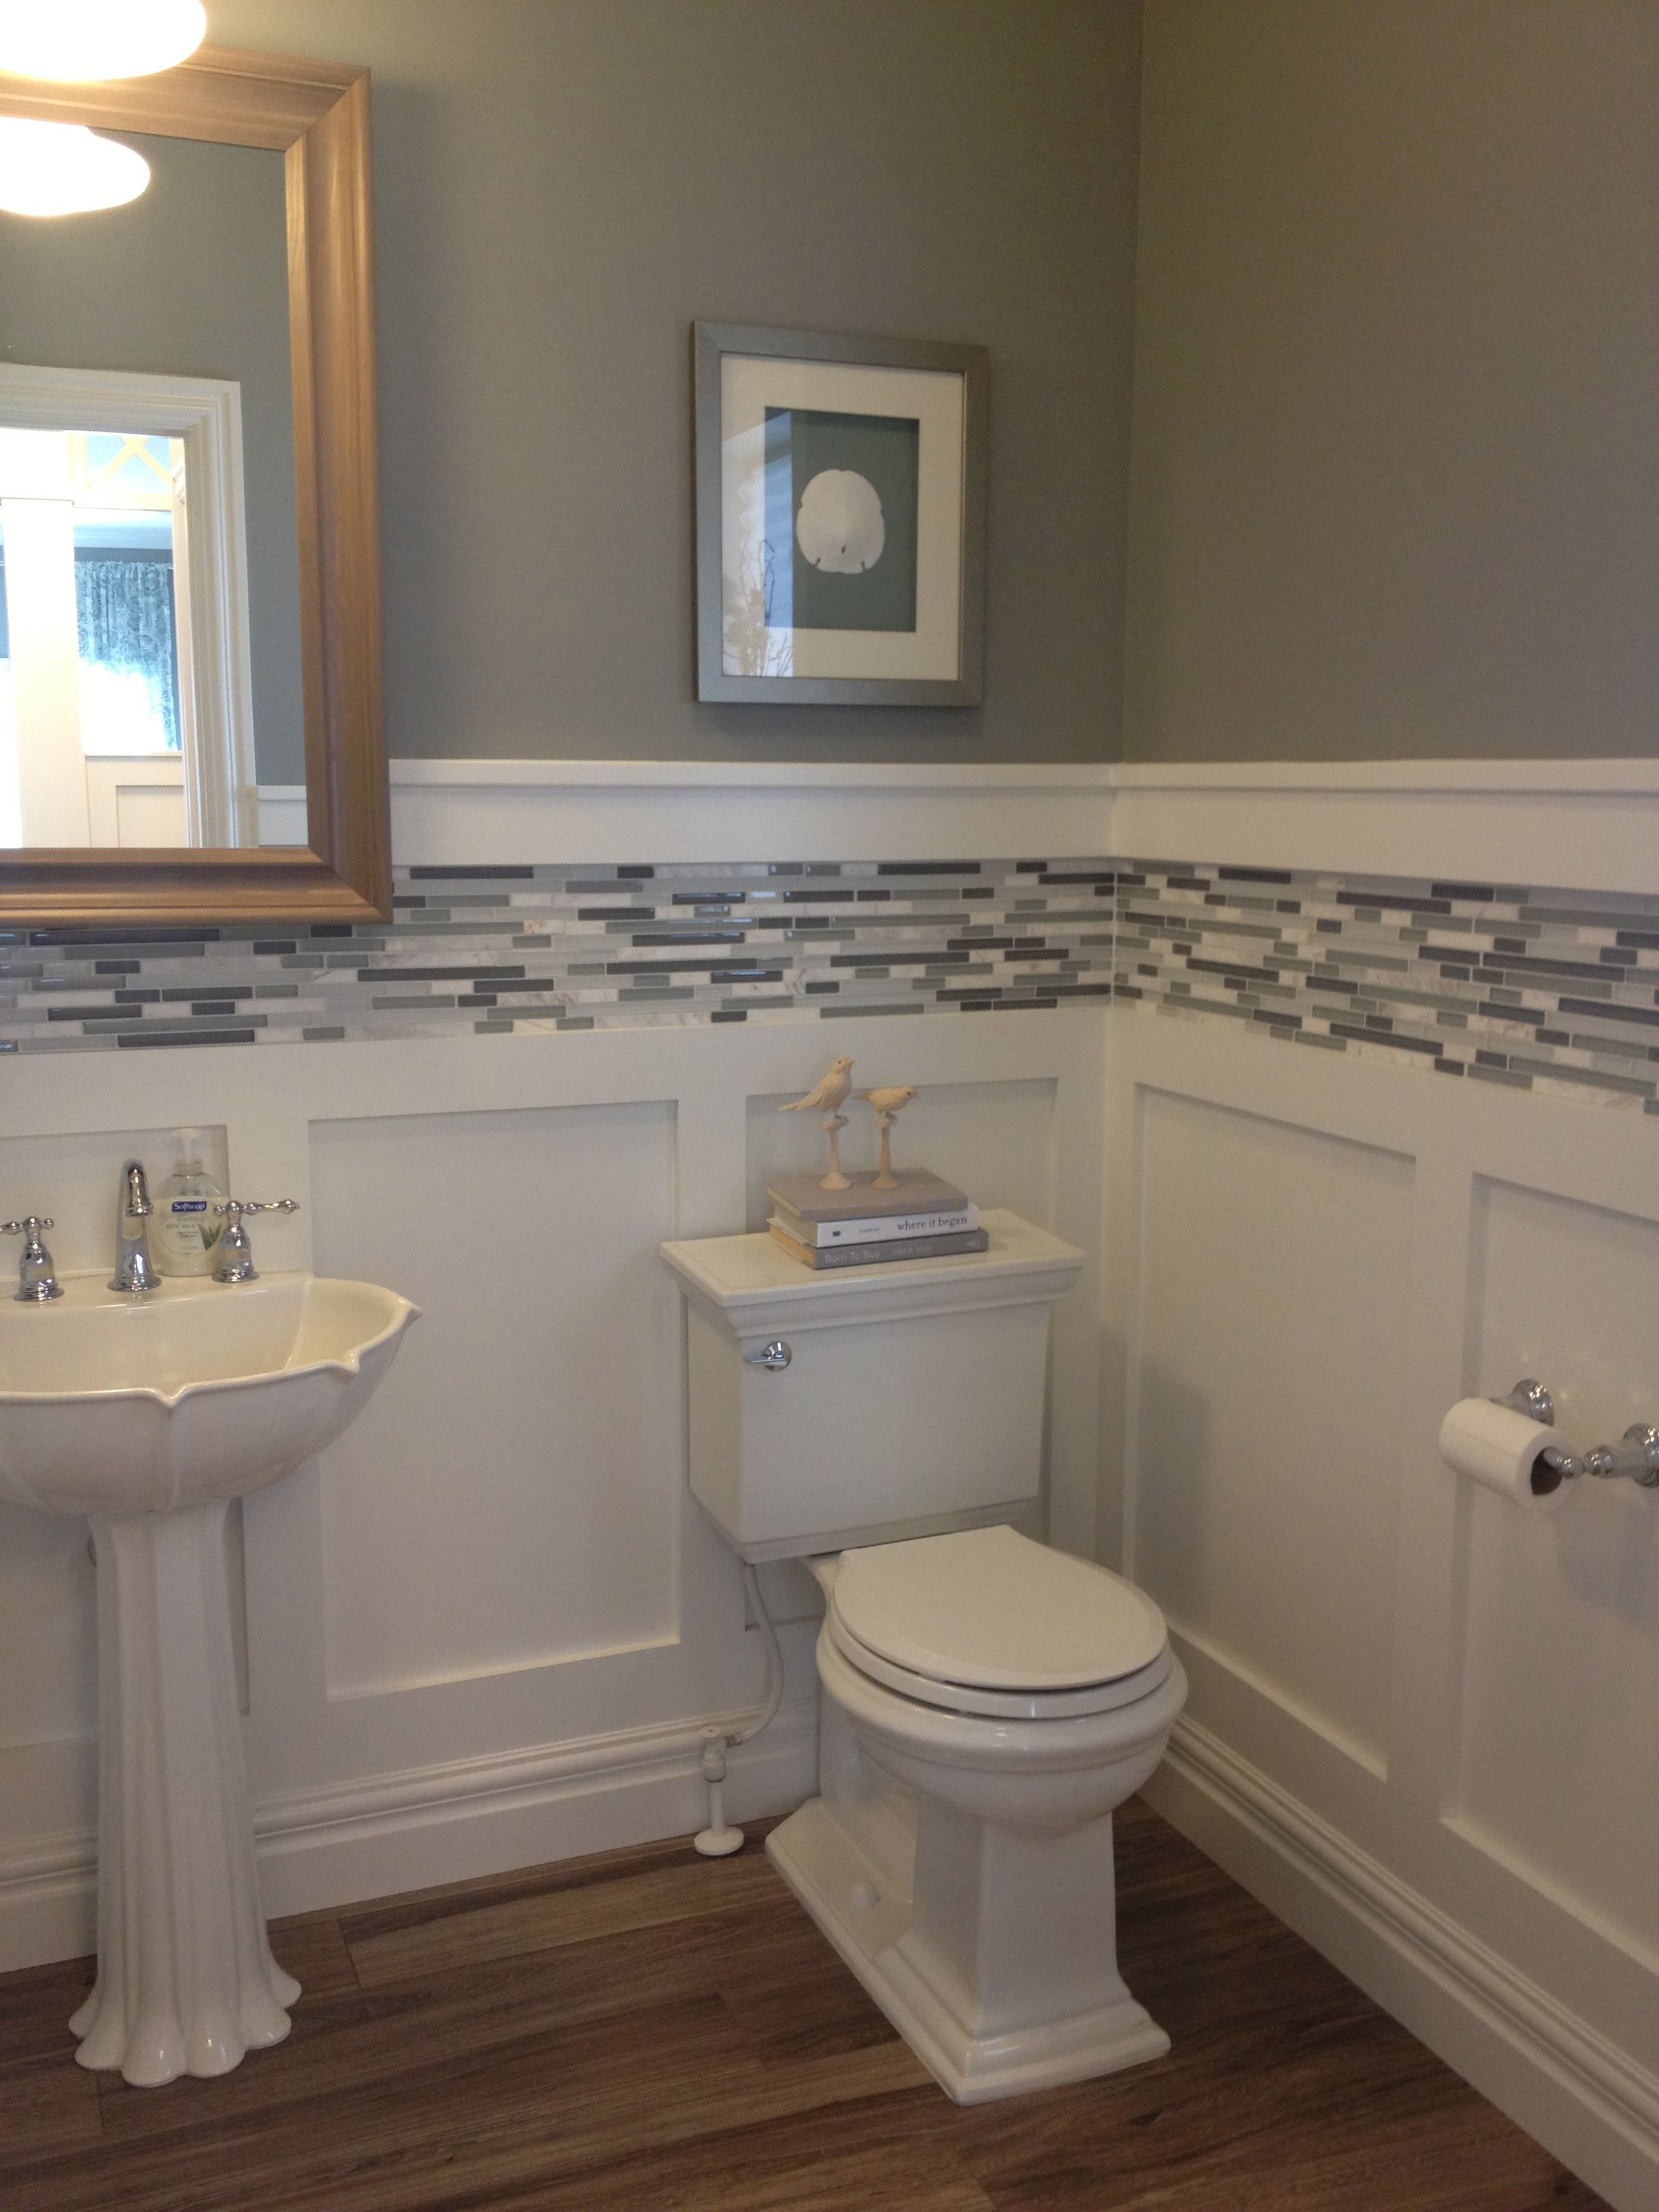 Bathroom choices bald hairstyles choices and wainscoting for Bathroom accent ideas